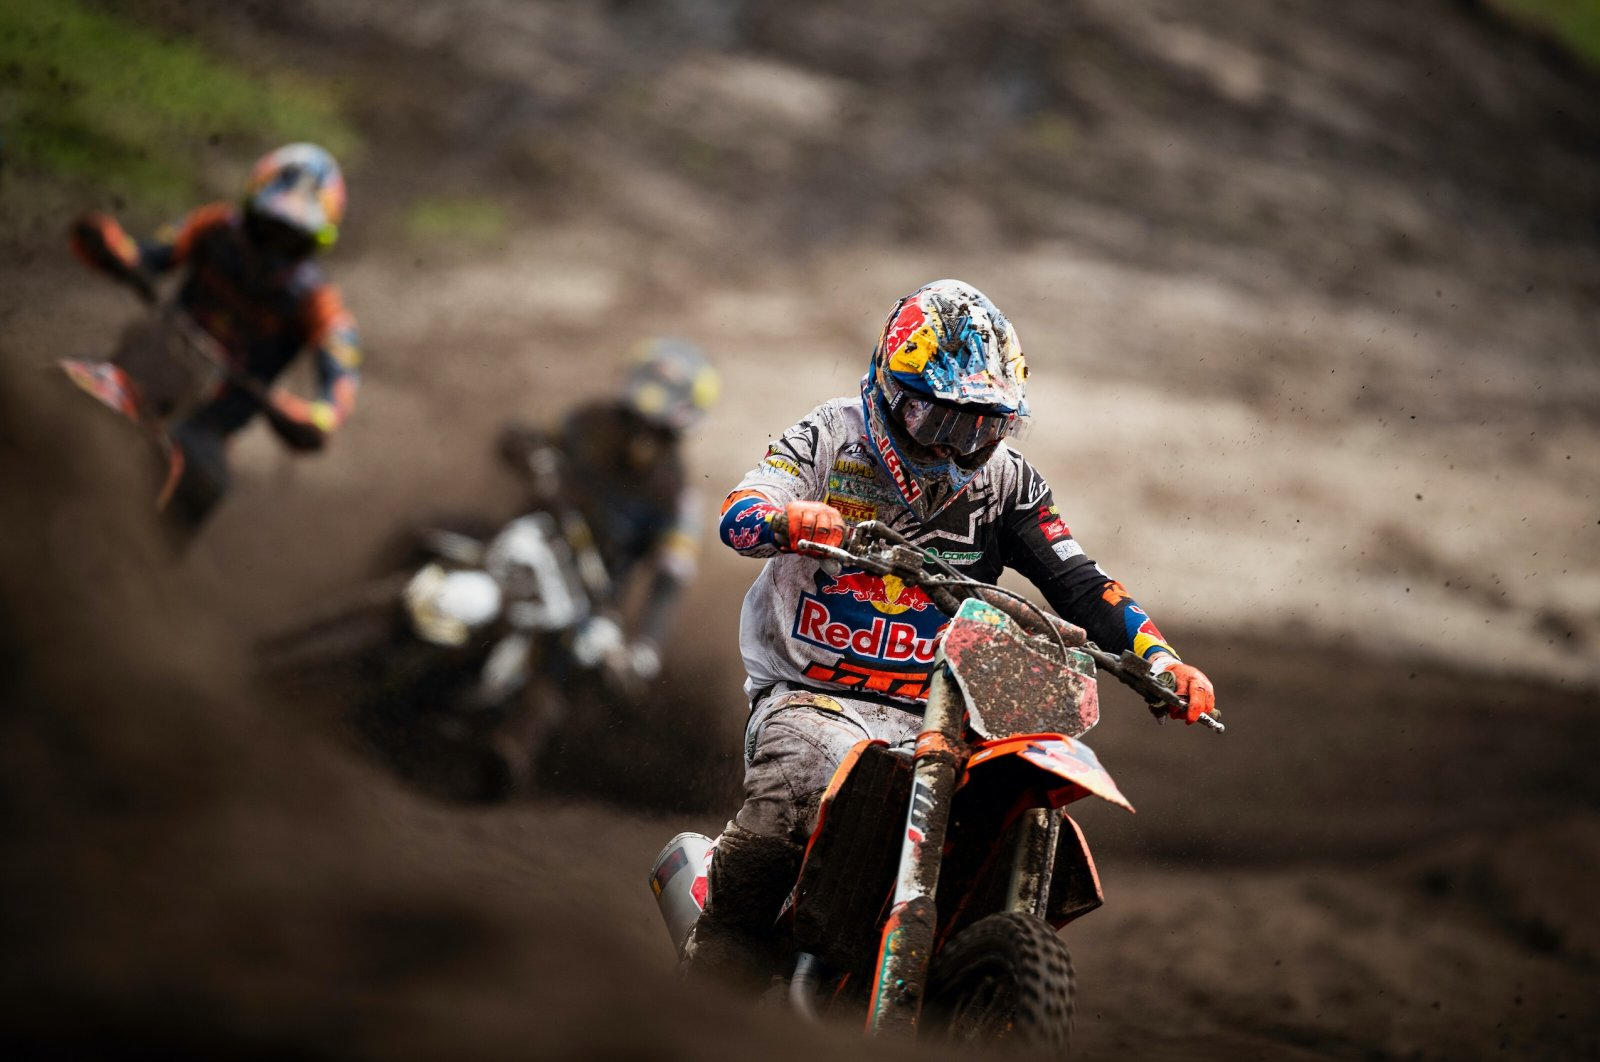 The Netherlands' Jeffrey Herlings competes during the FIM MXGP Motocross World Championship in Valkenswaard, the Netherlands, March 7, 2020. (IHA Photo)